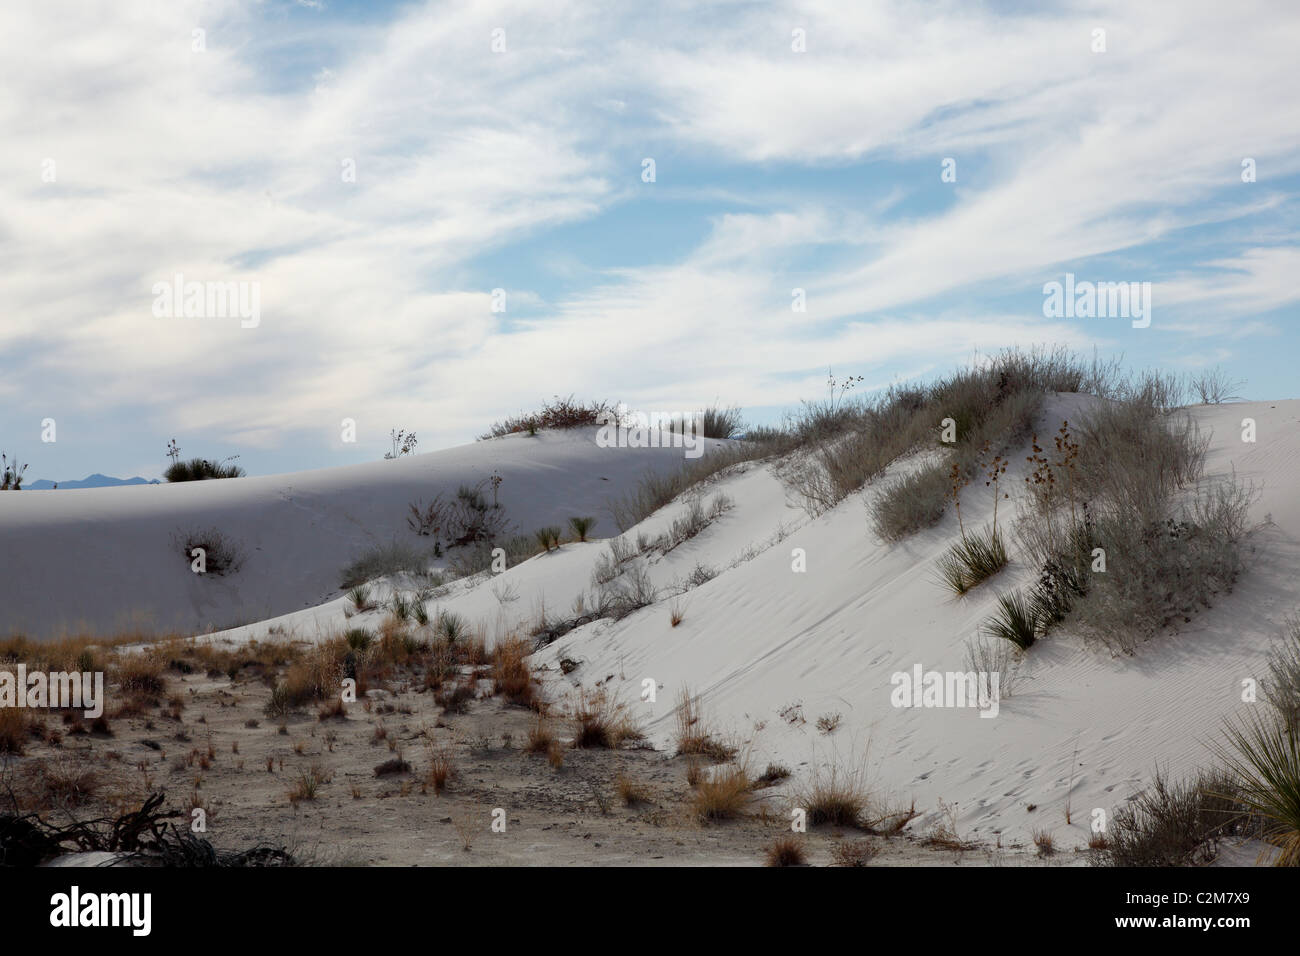 Sand dune at White Sands National Park in New Mexico, United States - Stock Image